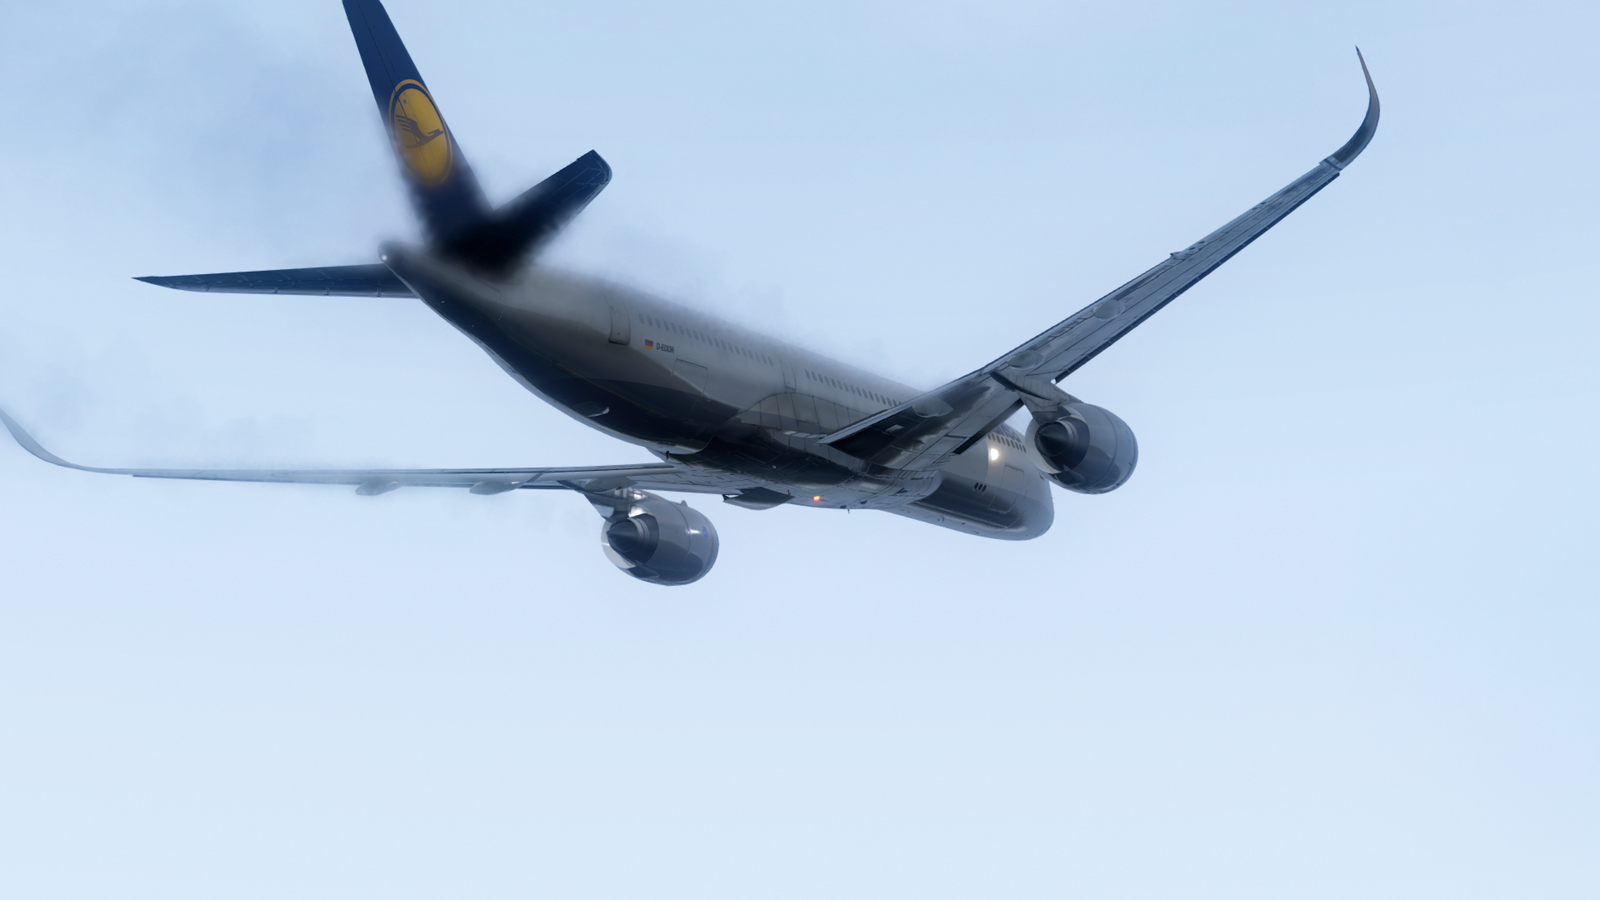 X-Plane Screenshot 2018 11 14 - 15 21 40 45 png - Airliners